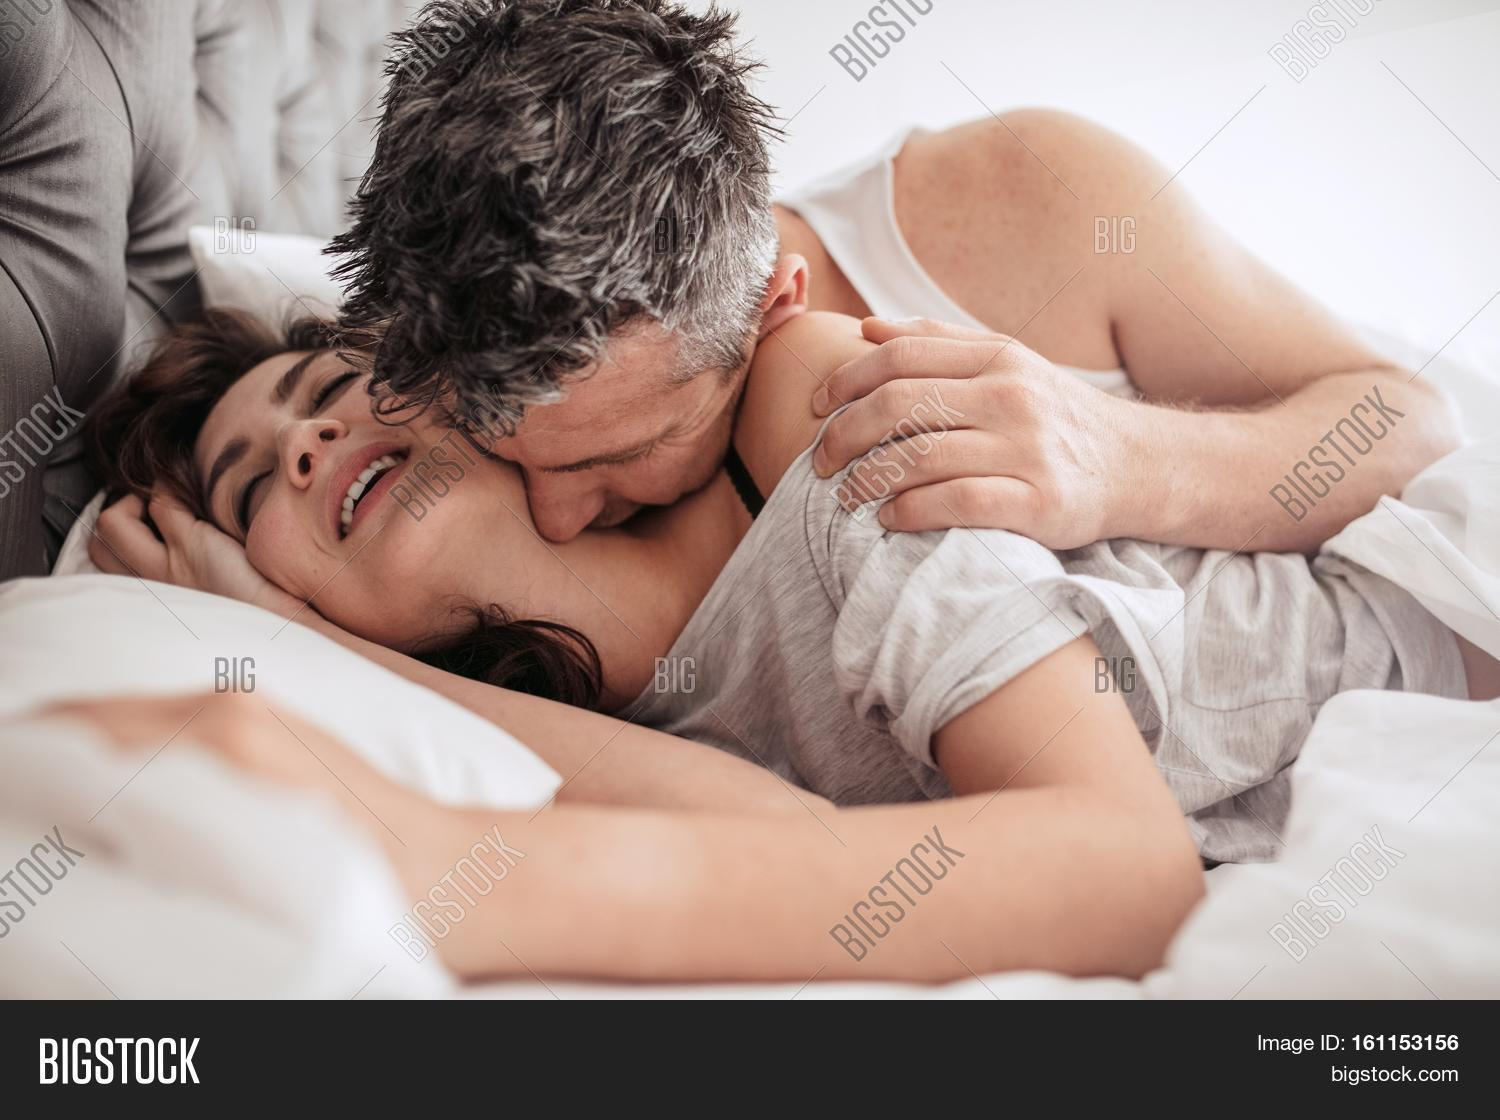 Good Morning Kiss Her Image Photo Free Trial Bigstock